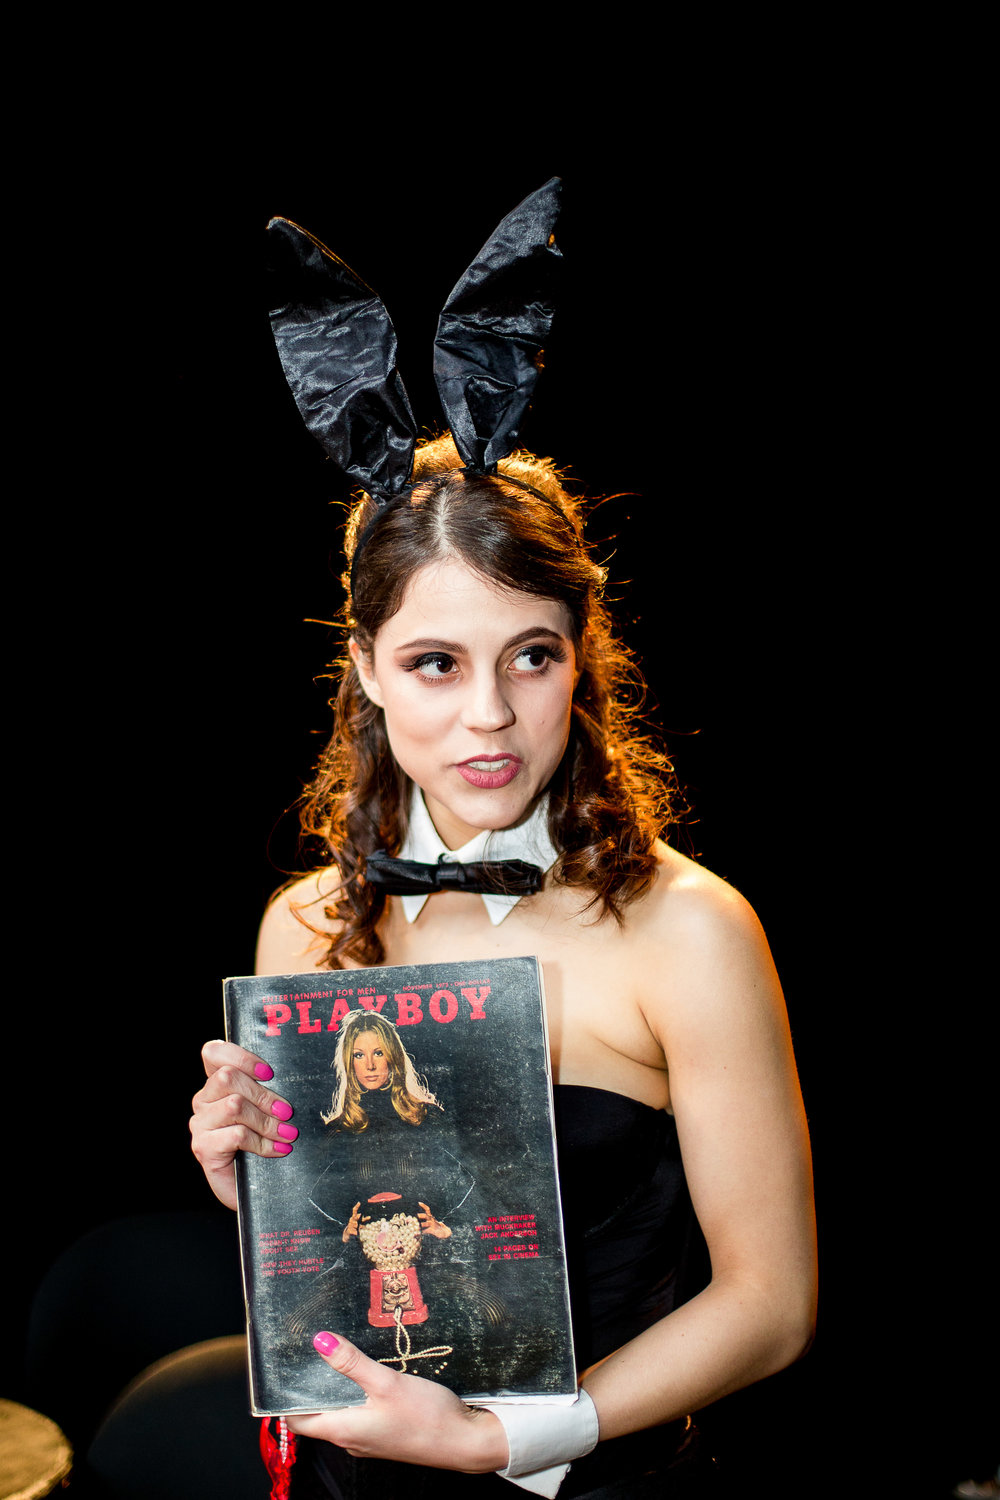 Featuring Mariana Castro Flórez as The Fourth Wave Bunny